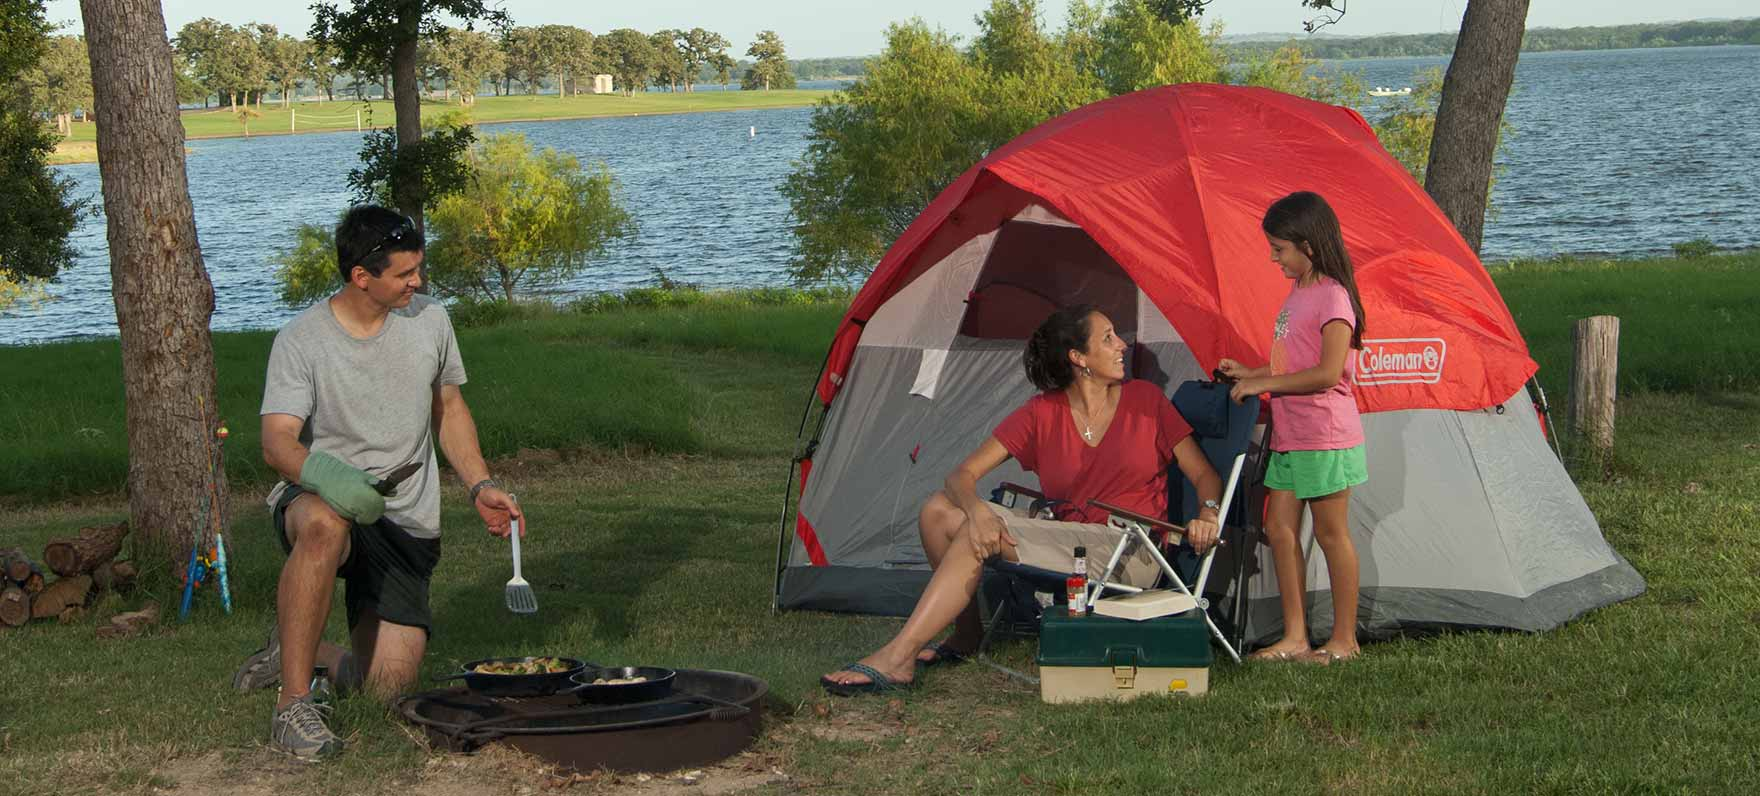 A family camp out at lake Somerville State Park and Trailway.